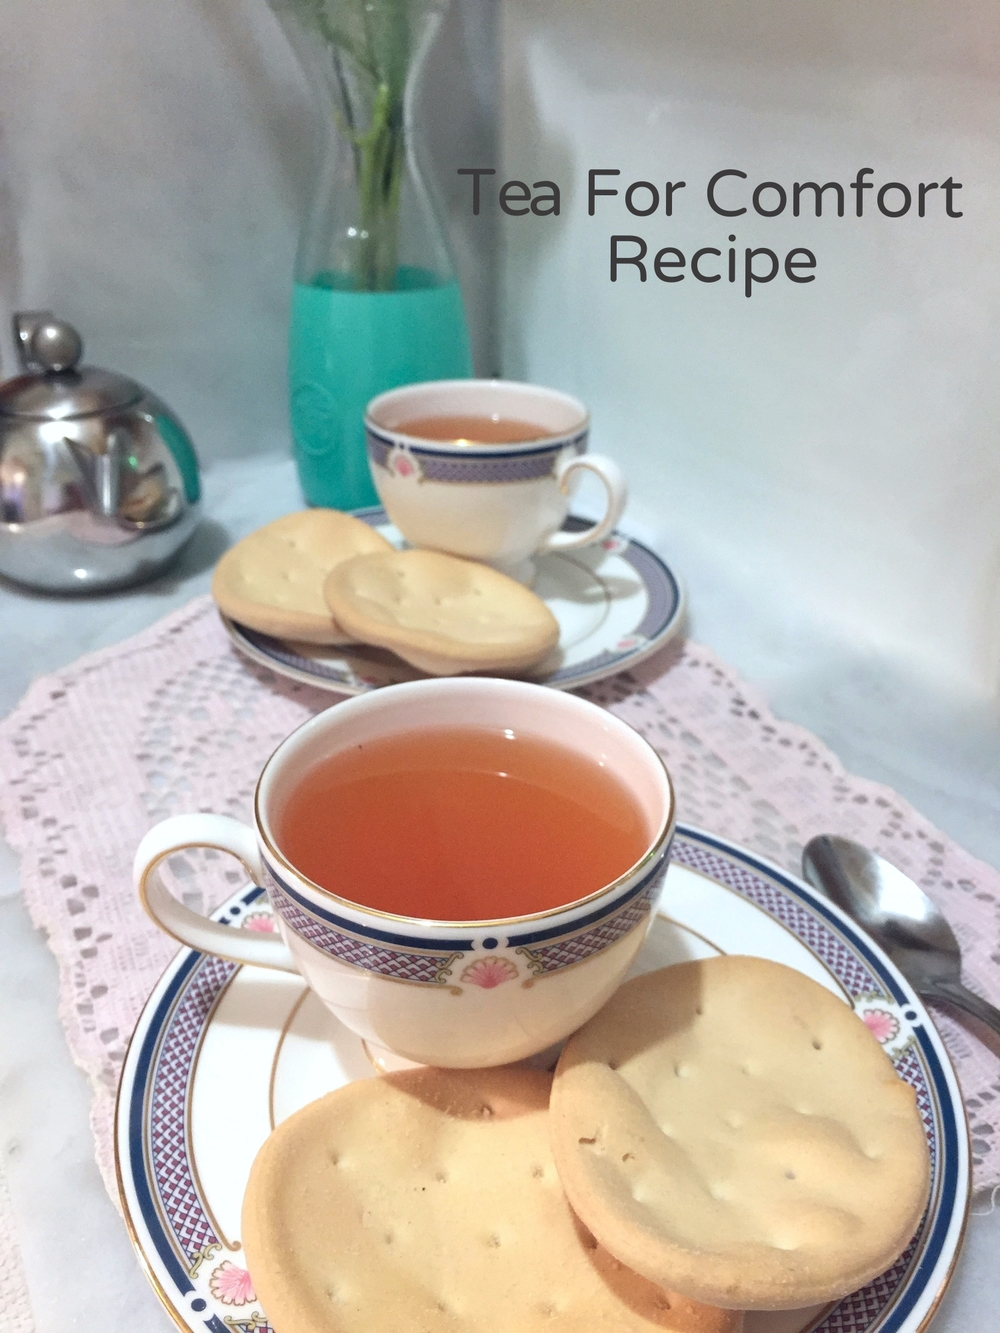 Tea for comfort recipe